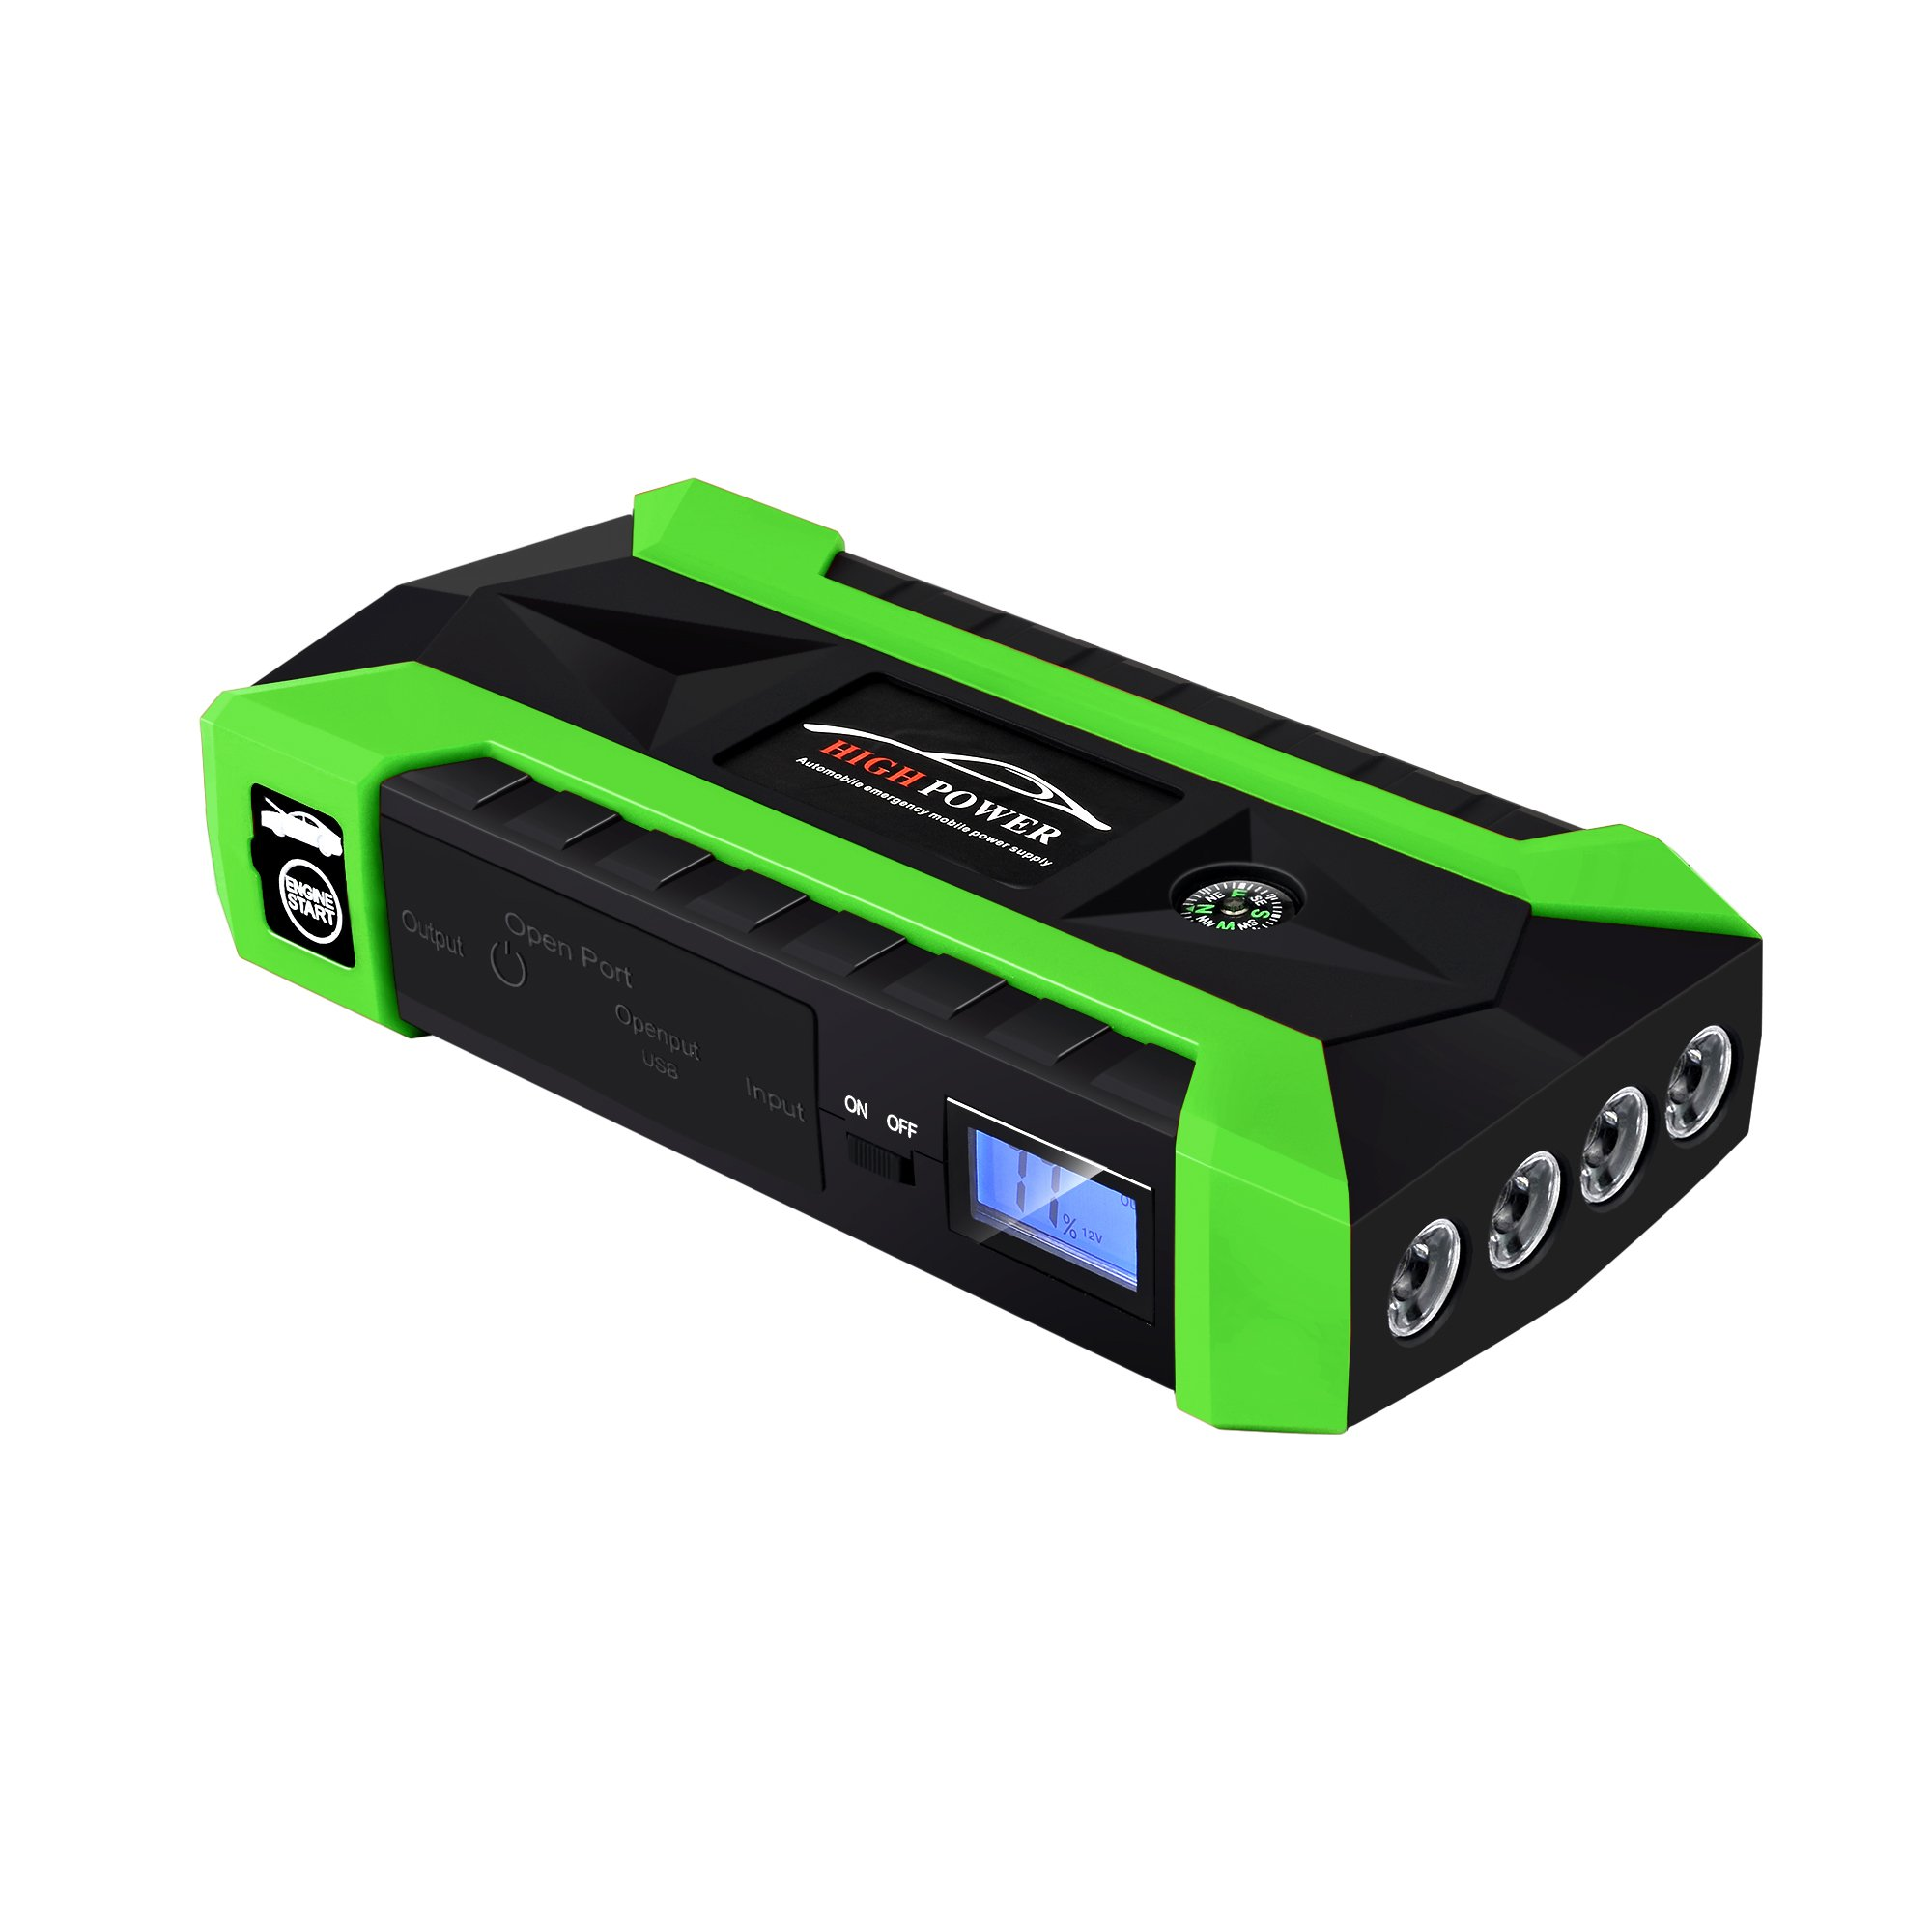 600A Peak 20000mAh/89800mAh Portable Car Jump Starter (up to 6.0L Gas, 3.0L Diesel Engine) Auto Battery Booster and Phone Chargerwith Smart Jumper Cables Power Pack (Green, 89800mAh)